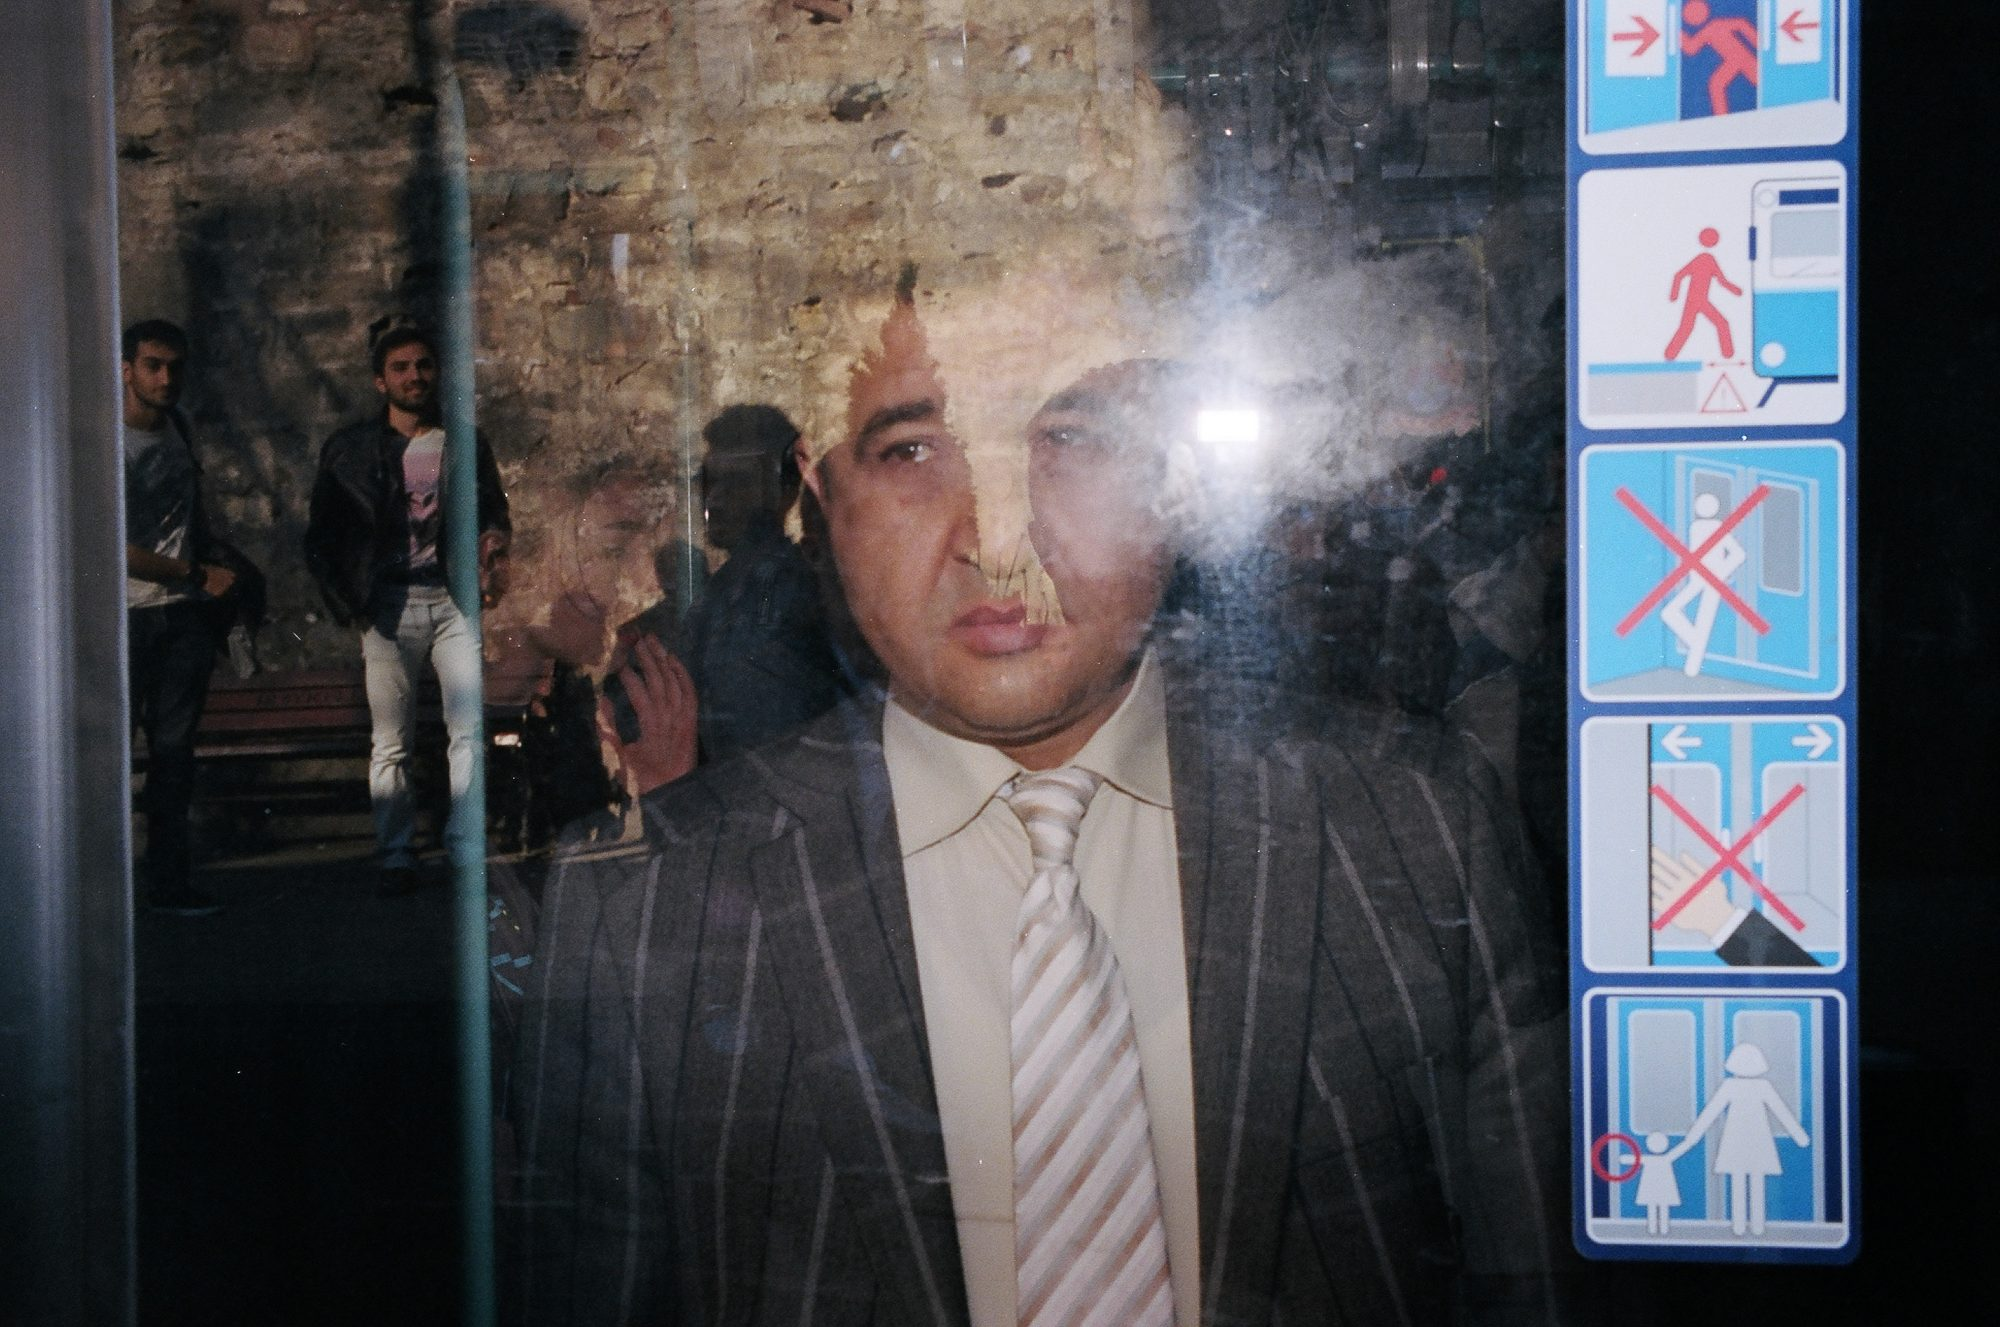 Istanbul man in suit, with flash through glass.